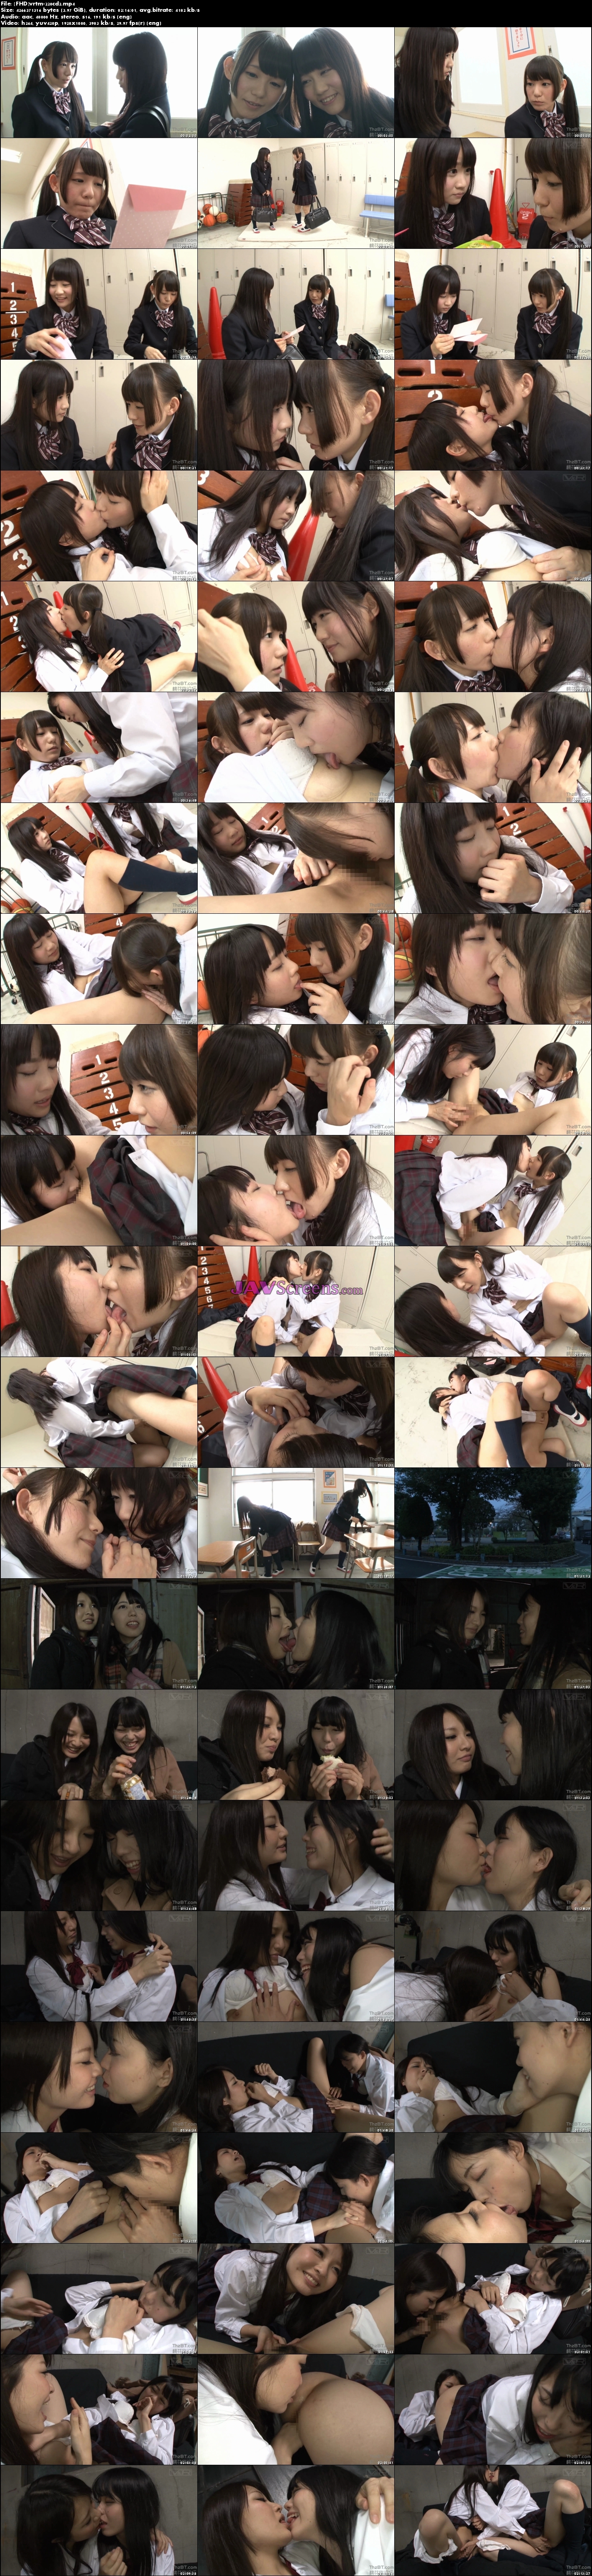 VRTM-220B.jpg - JAV Screenshot